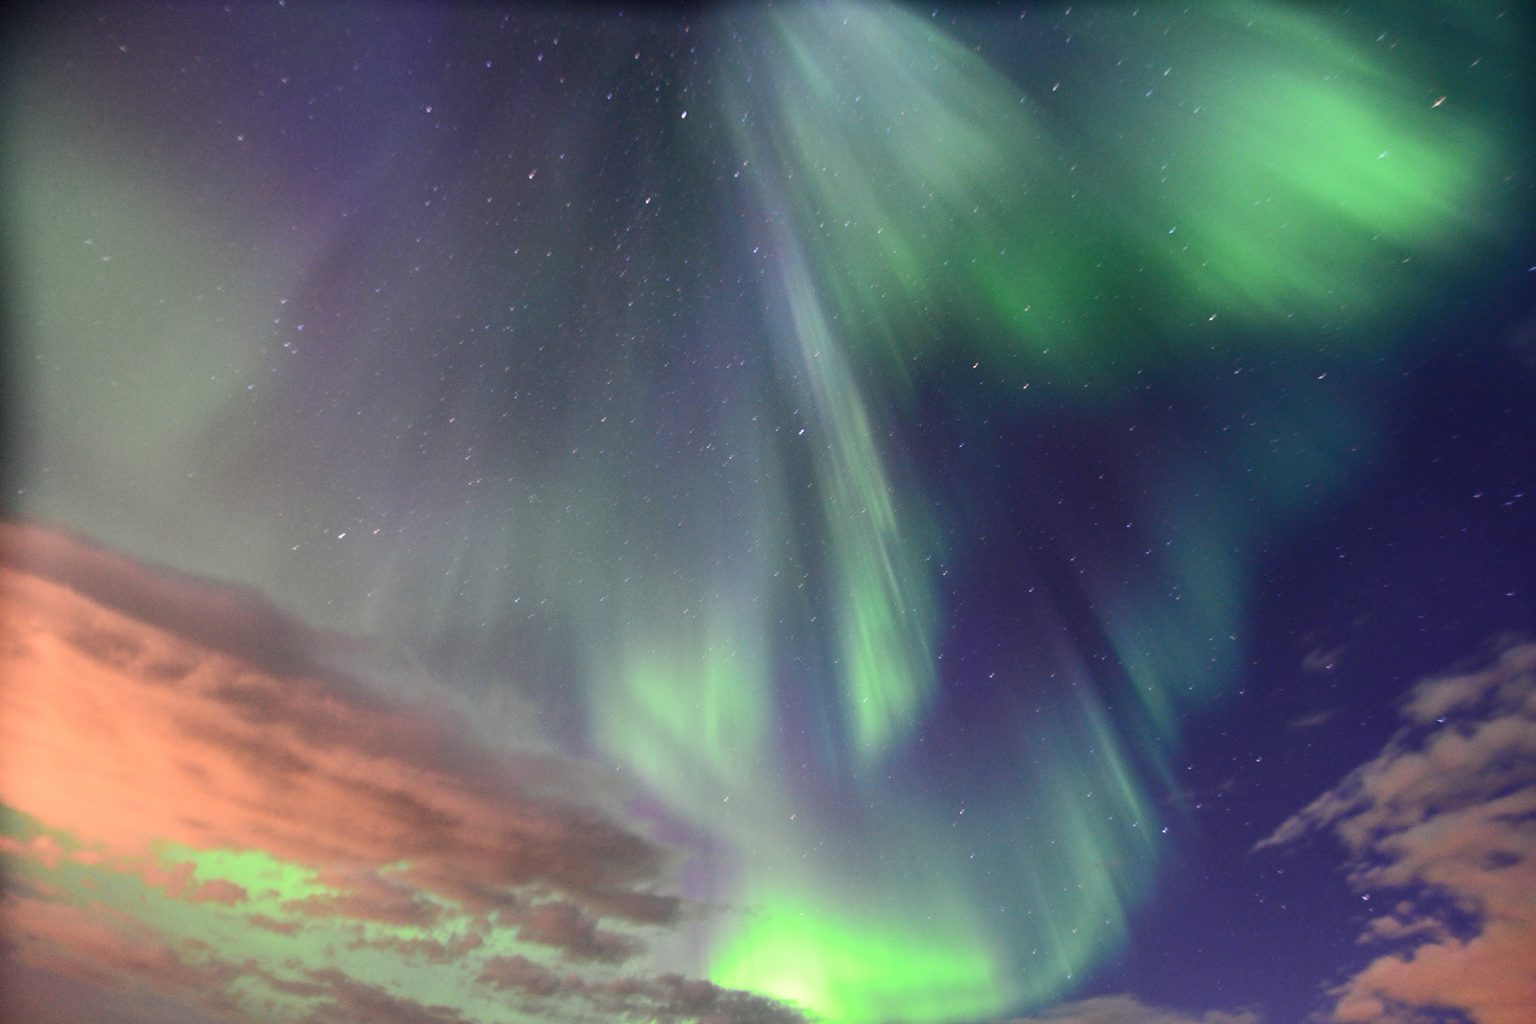 purple and green northern lights in the sky in iceland